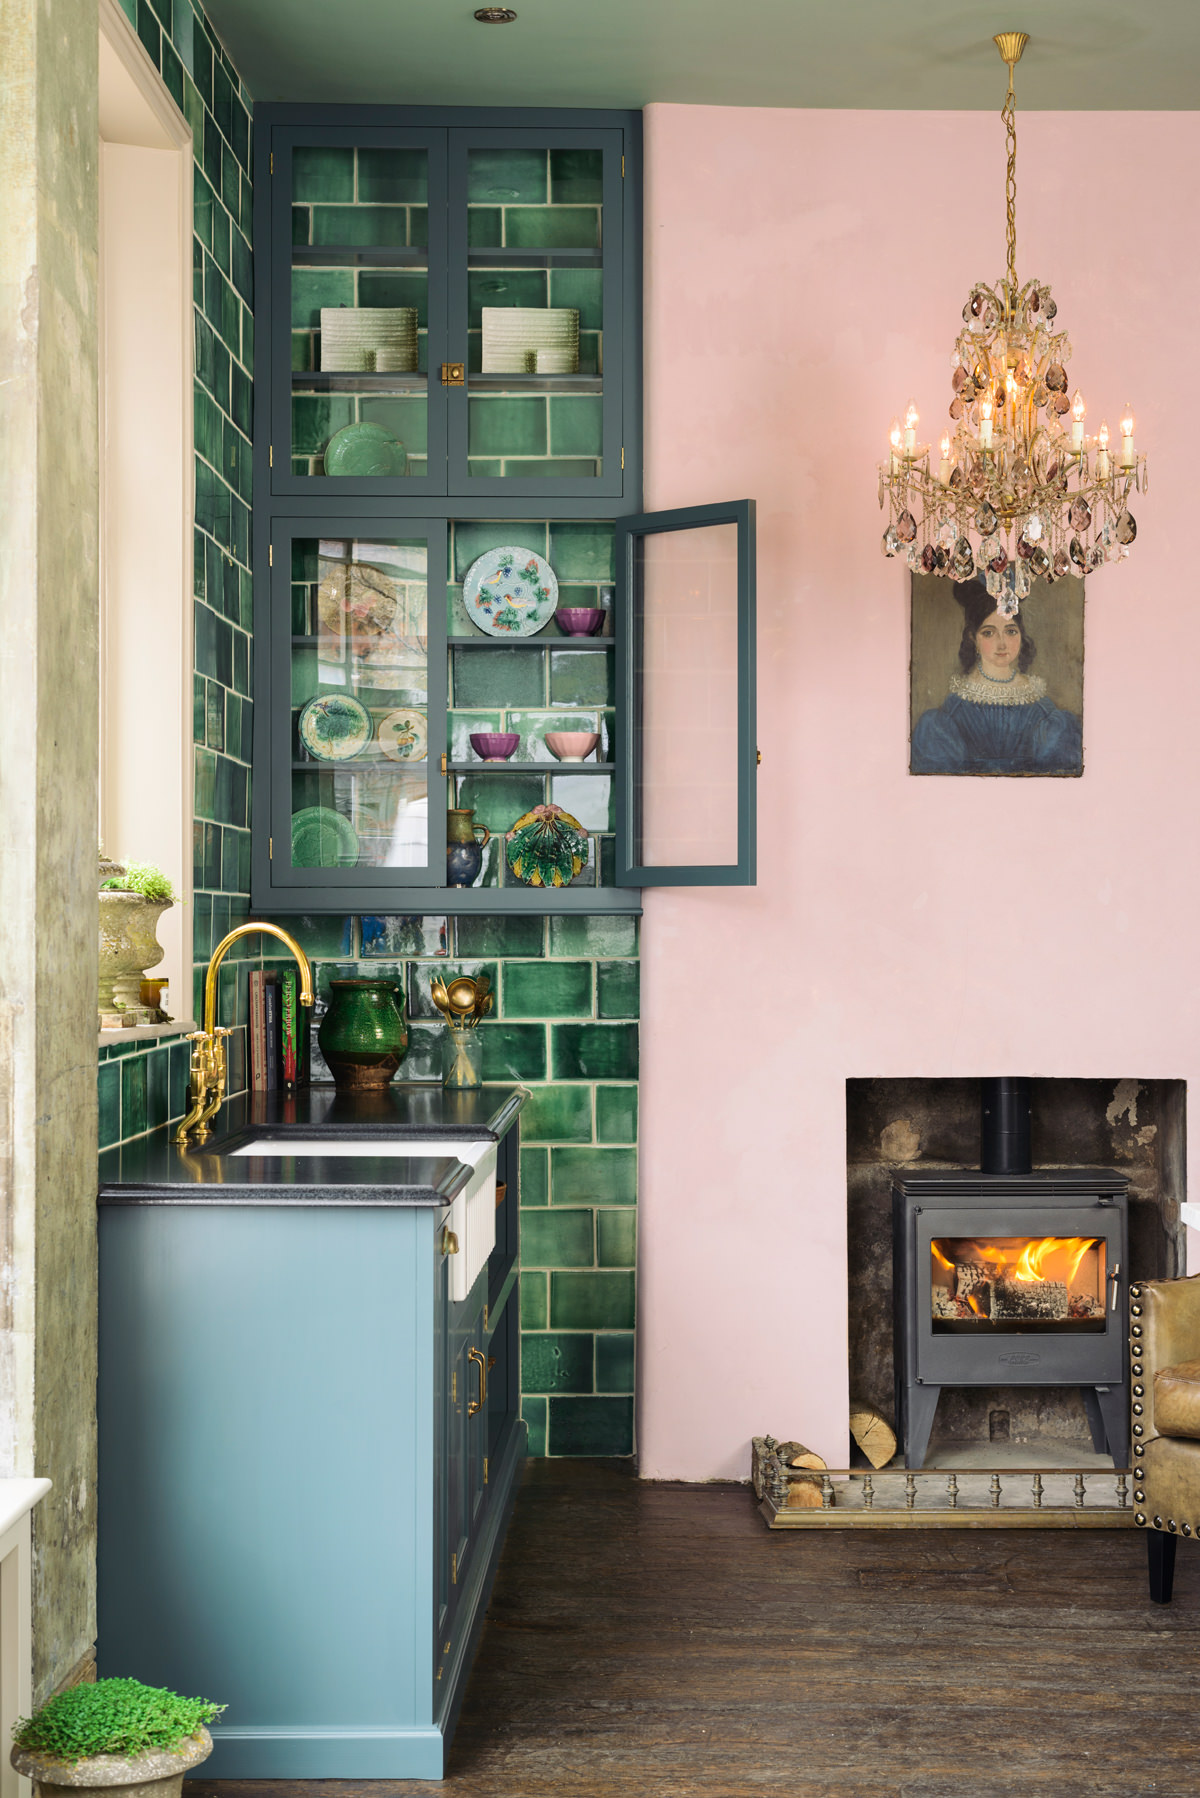 20 Photos That Will Prove Decorating with Pink and Green is the Next Big Thing